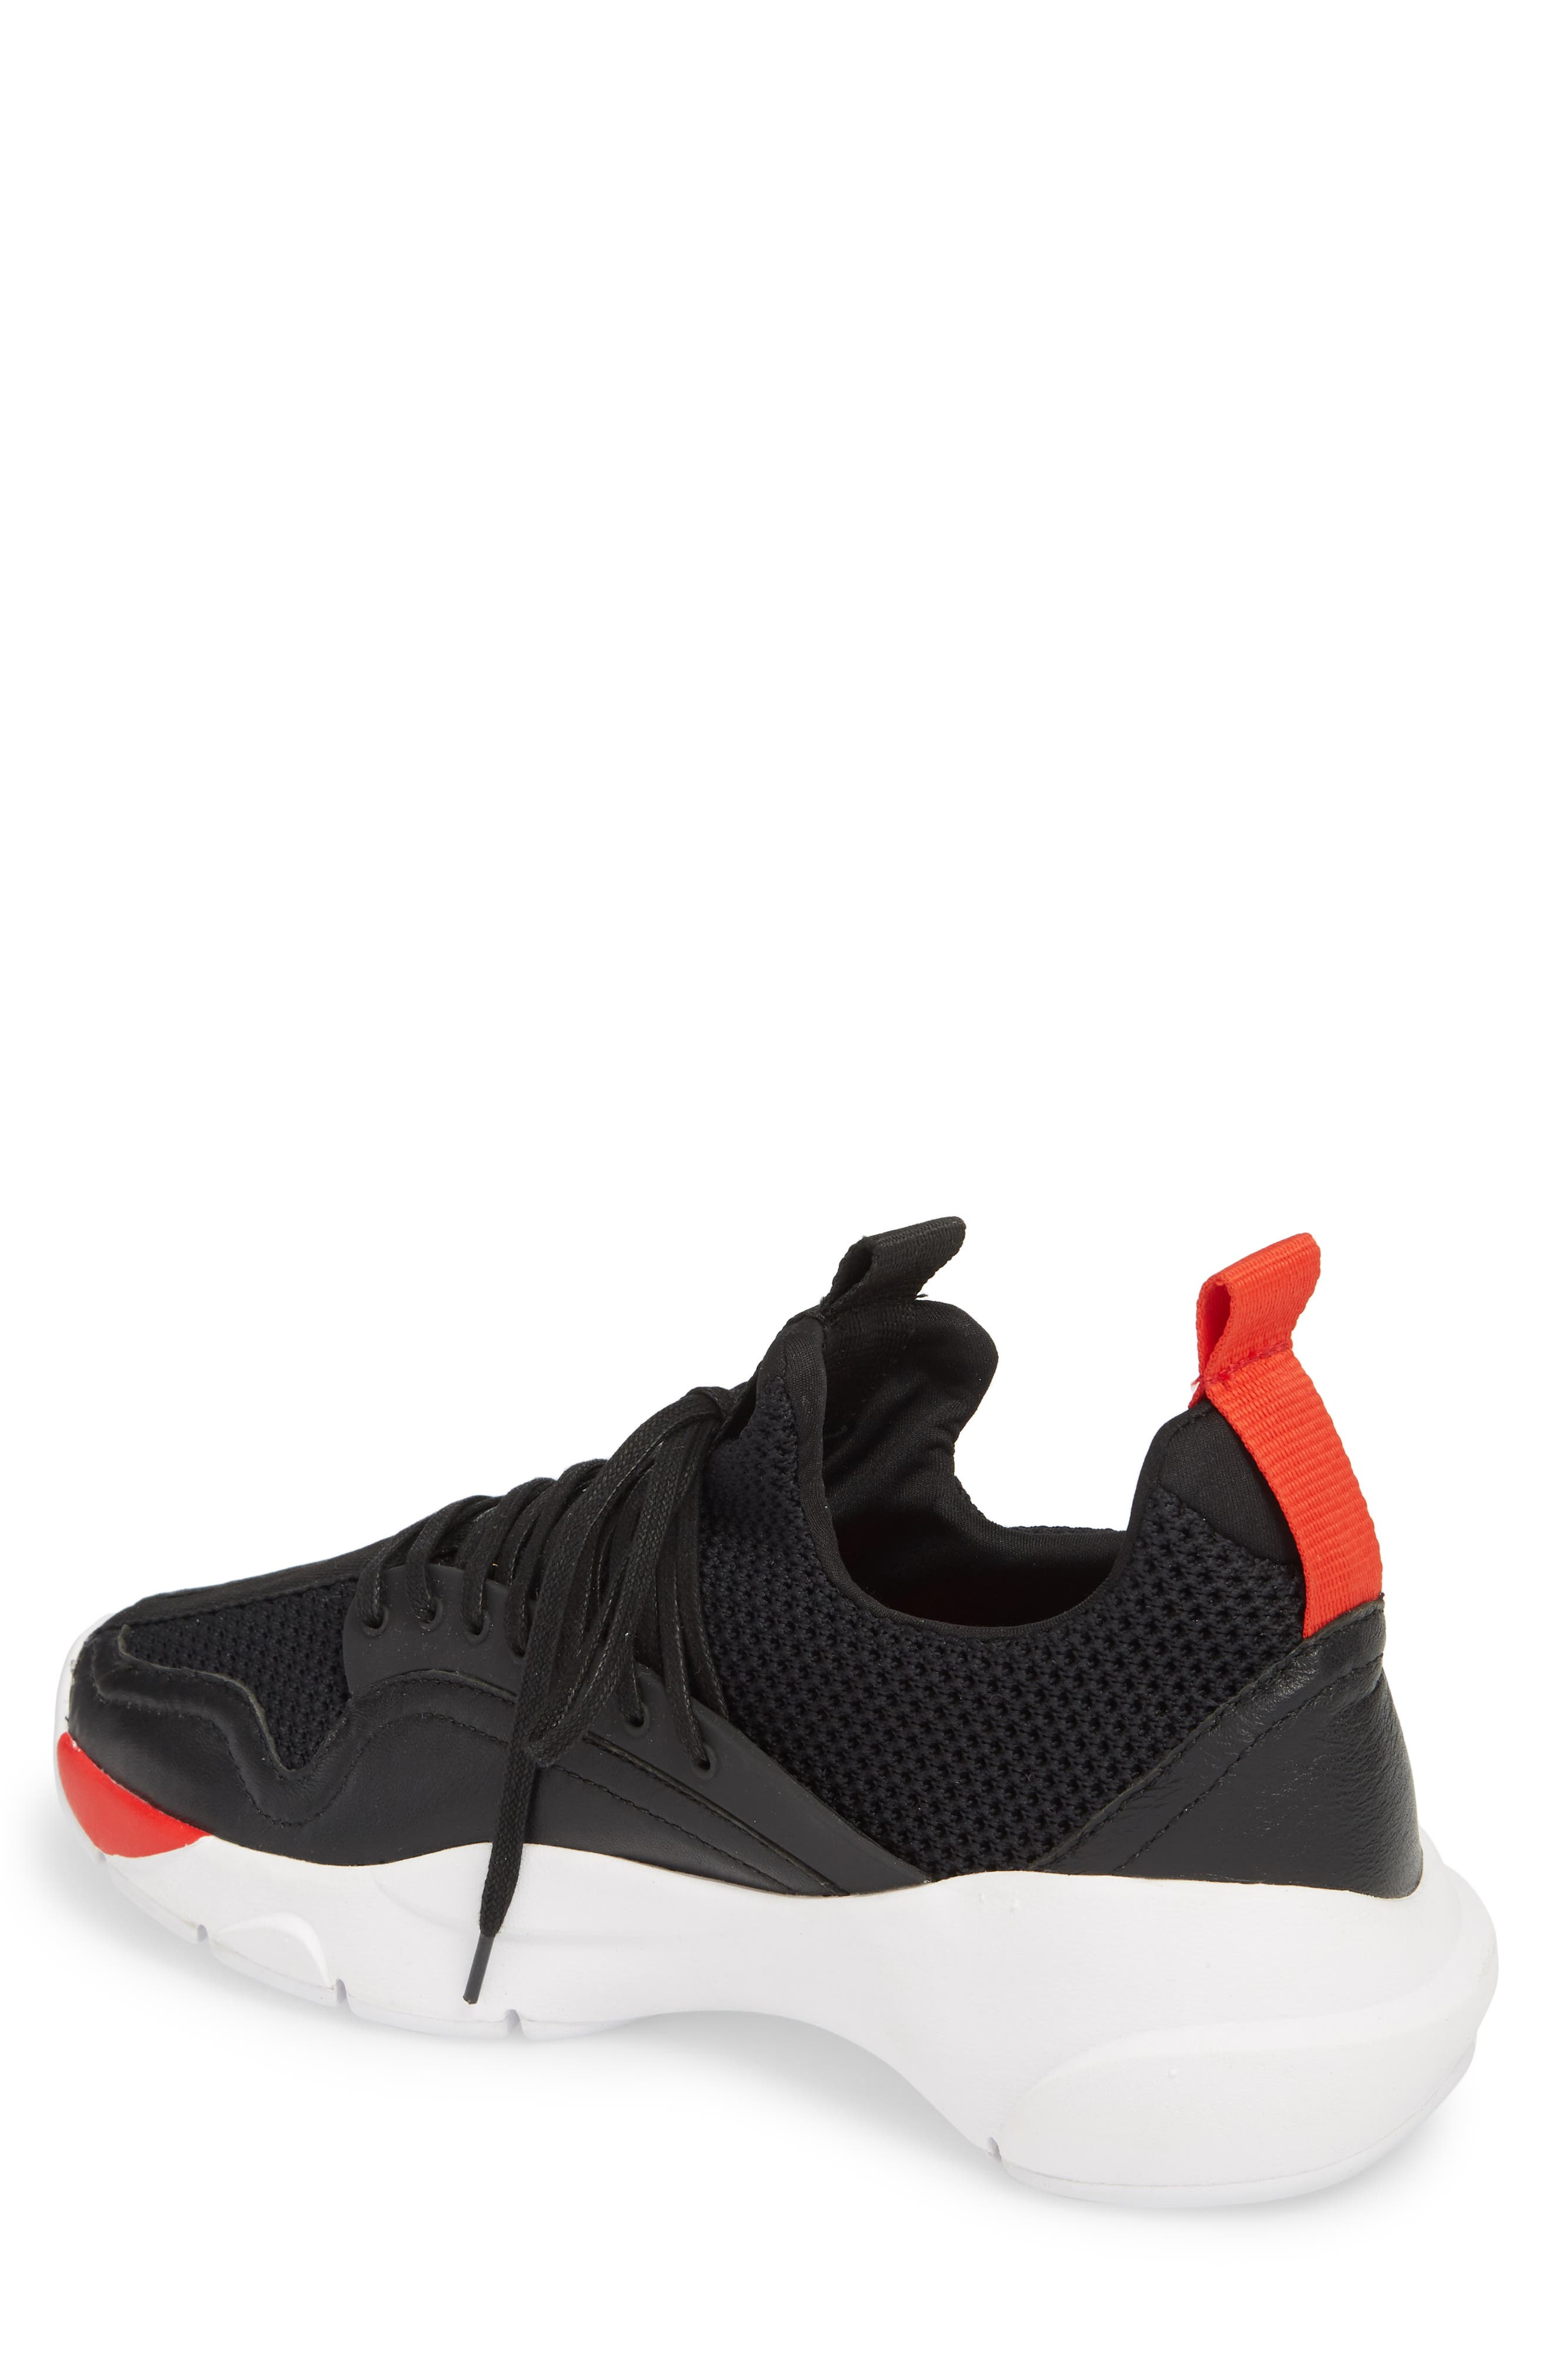 Clear Weather The Cloud Stryke Sneaker,                             Alternate thumbnail 2, color,                             002